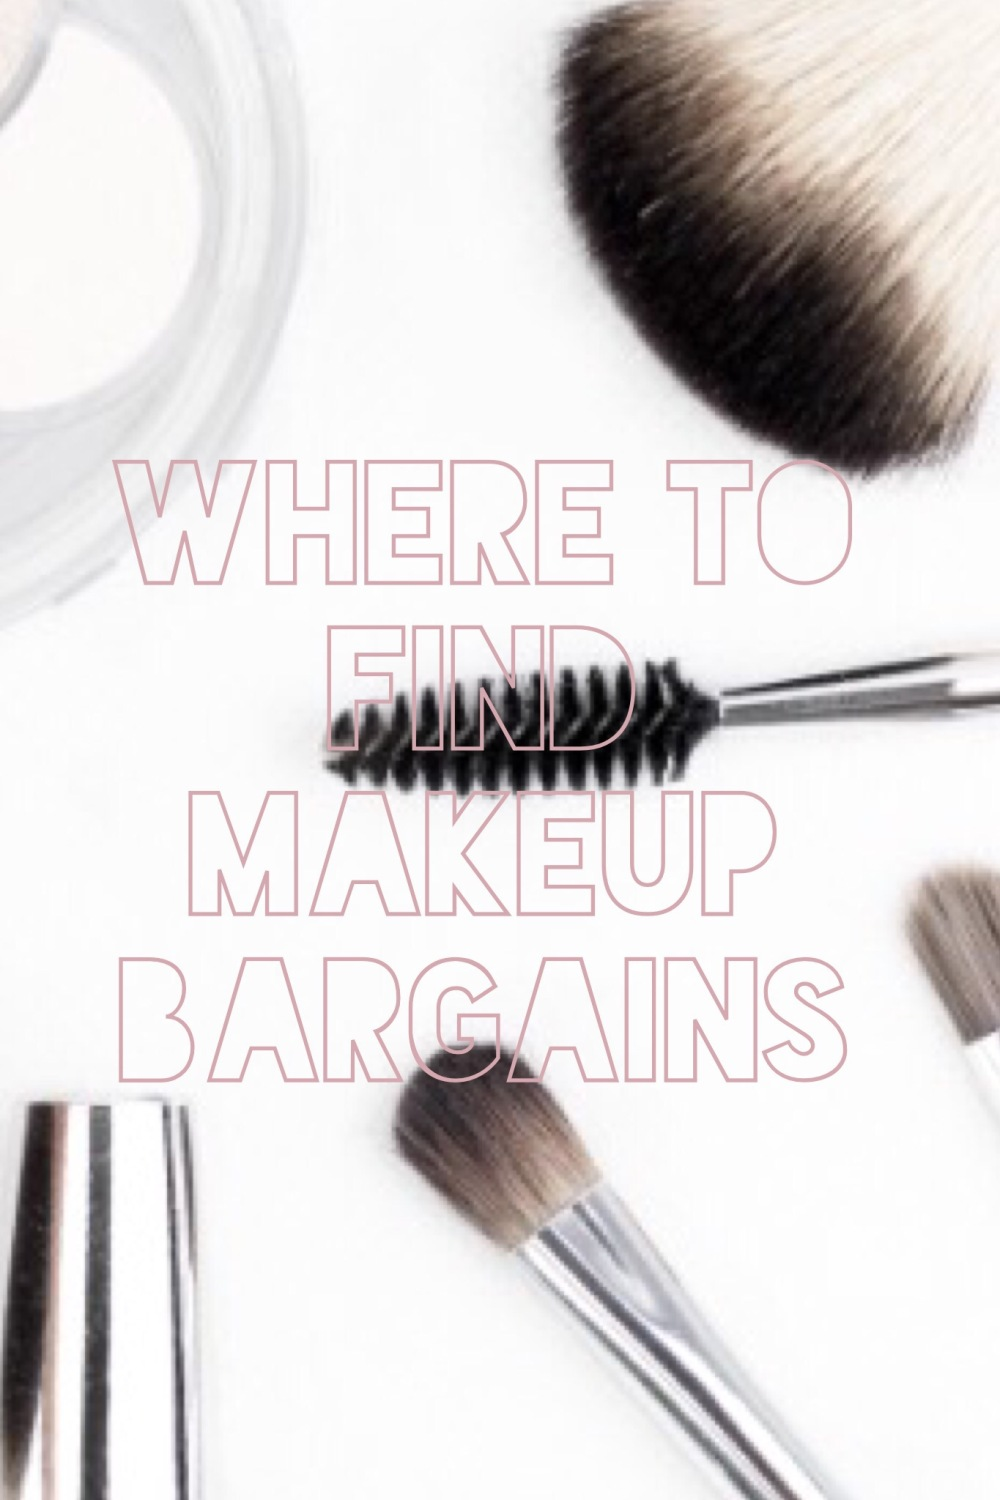 Where To find and buy cheap makeup bargains pinnable image